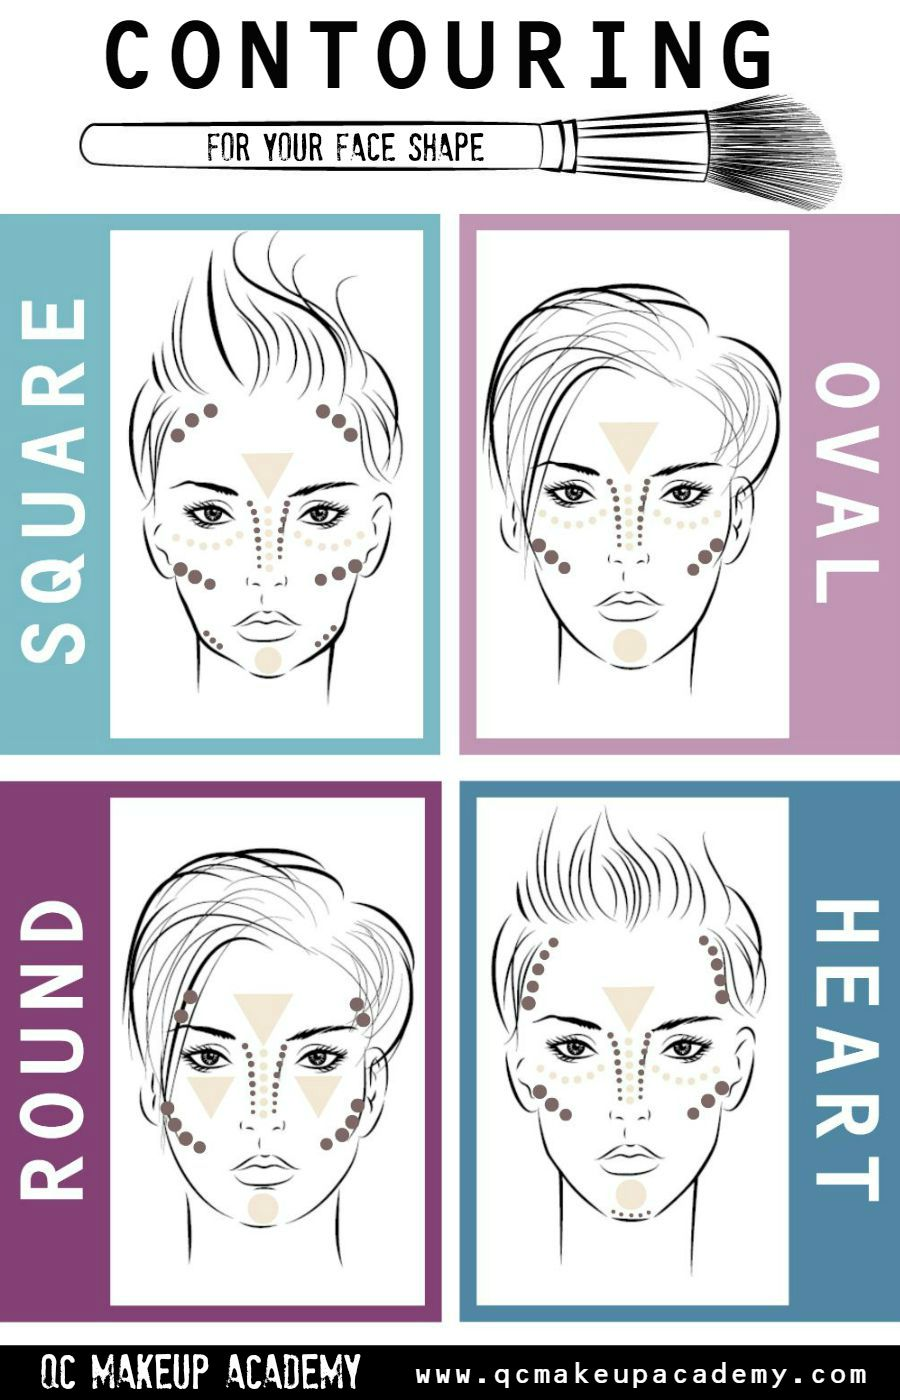 Infographic: Contouring for Your Face Shape - QC Makeup Academy